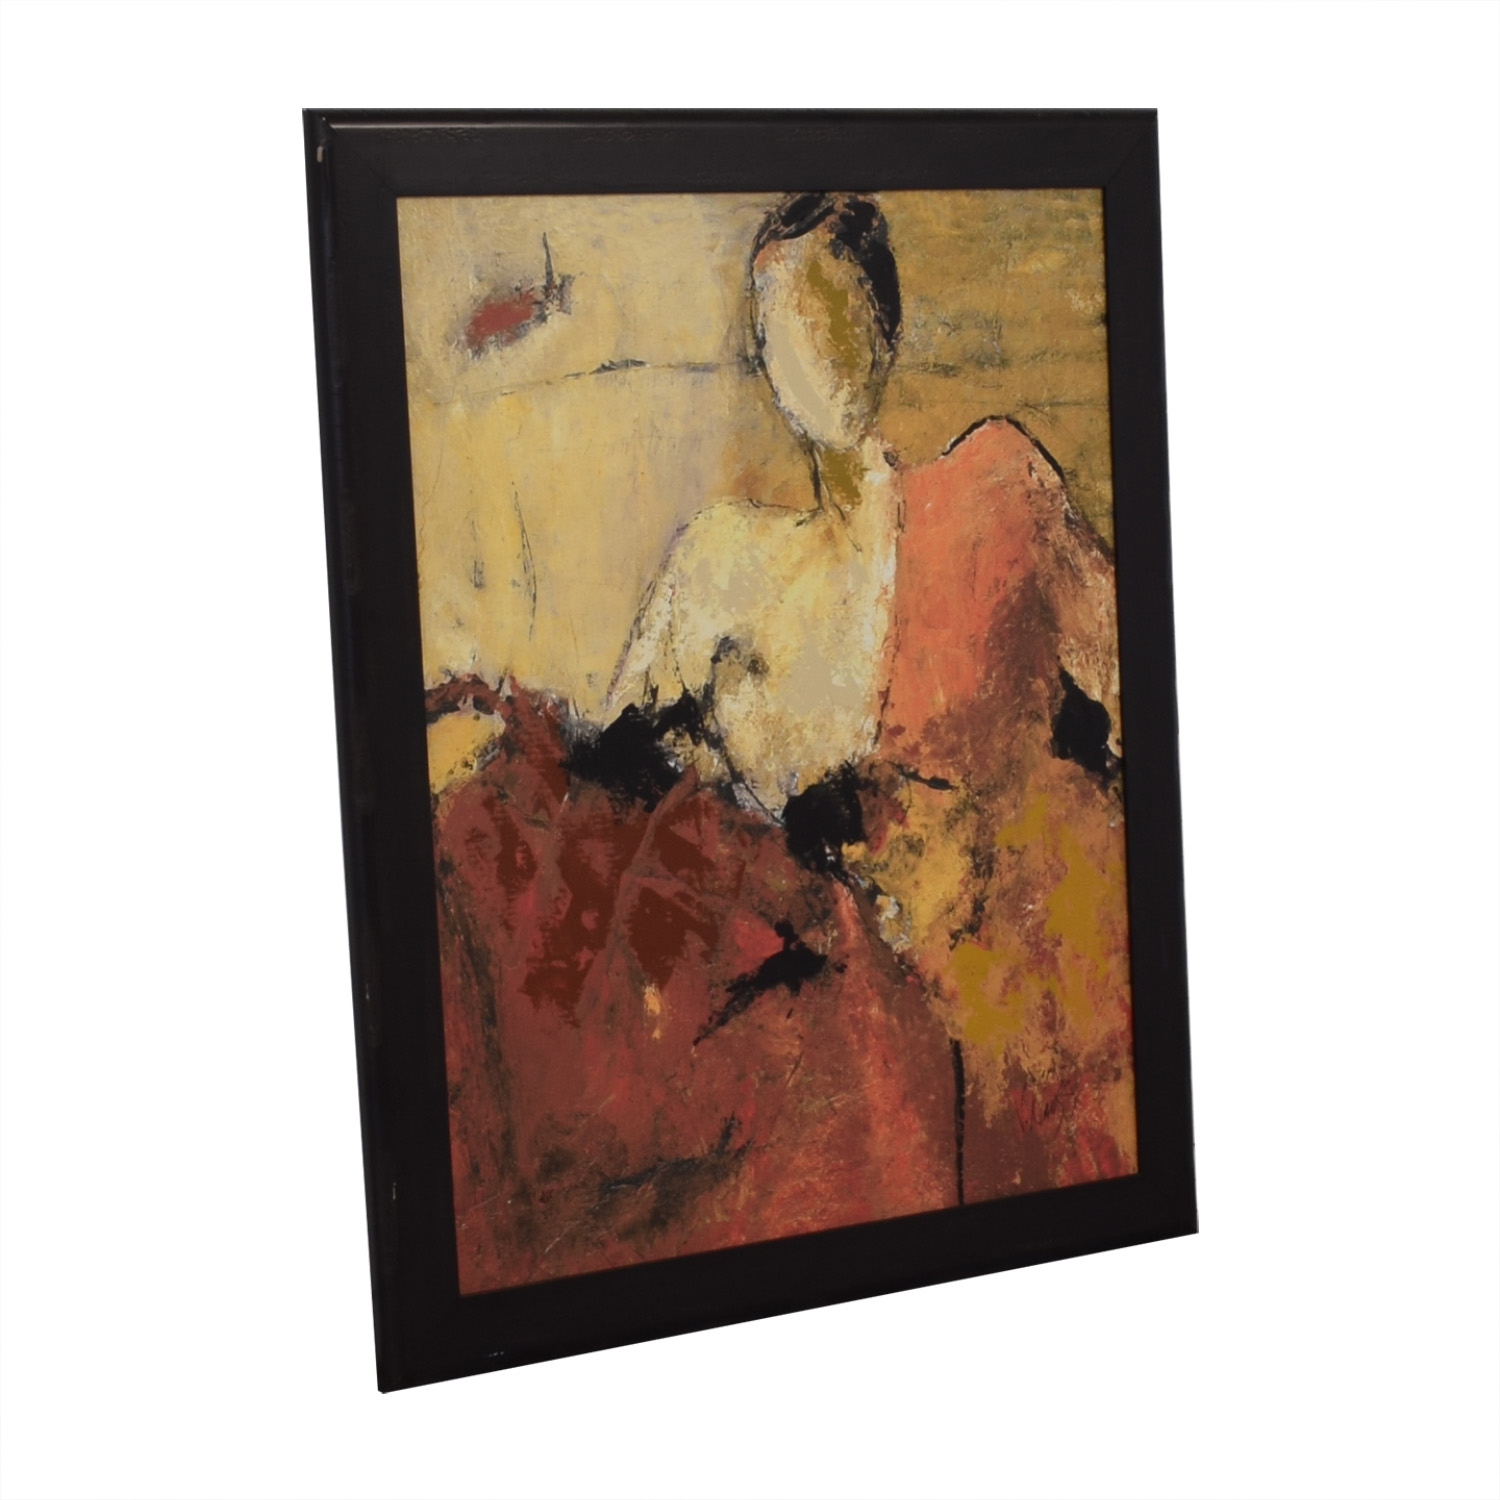 81% OFF , Z Gallerie Z Gallerie Wall Art on Black Wood Frame / Decor